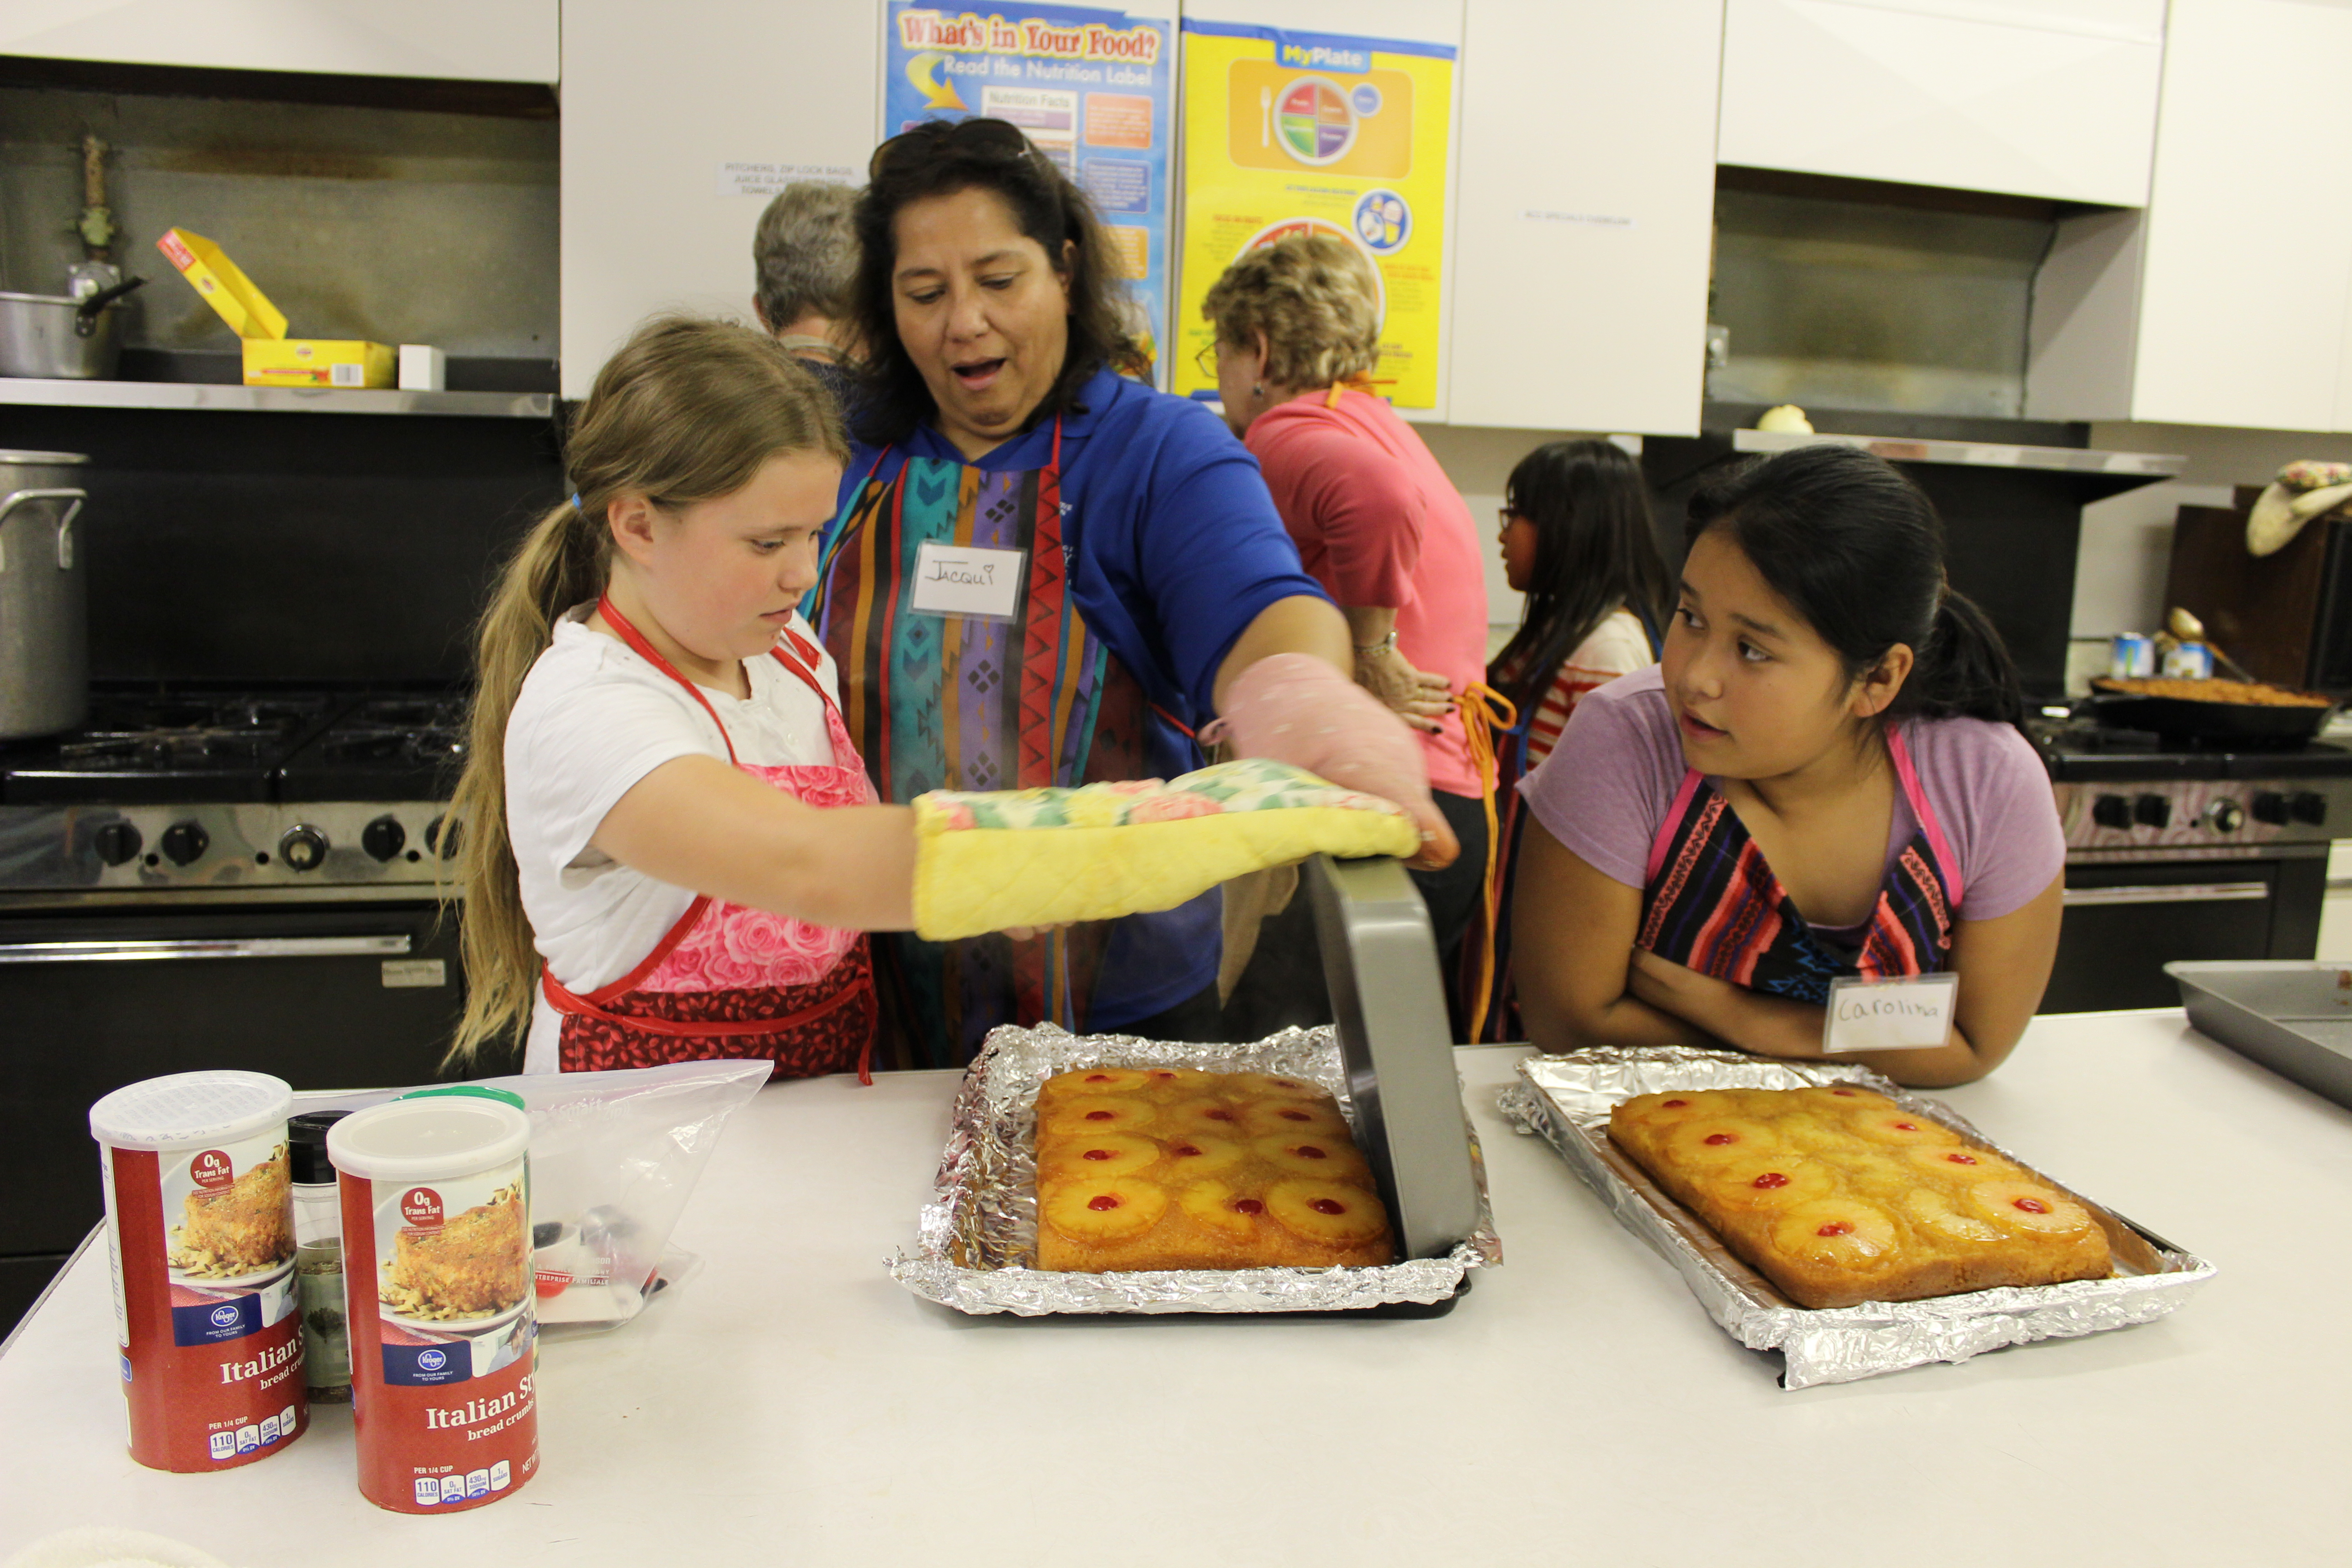 Jacqui Denegri, a nutrition educator with the Fayette County Extension Office, helped two girls flip the pineapple cakes hot out of the oven.